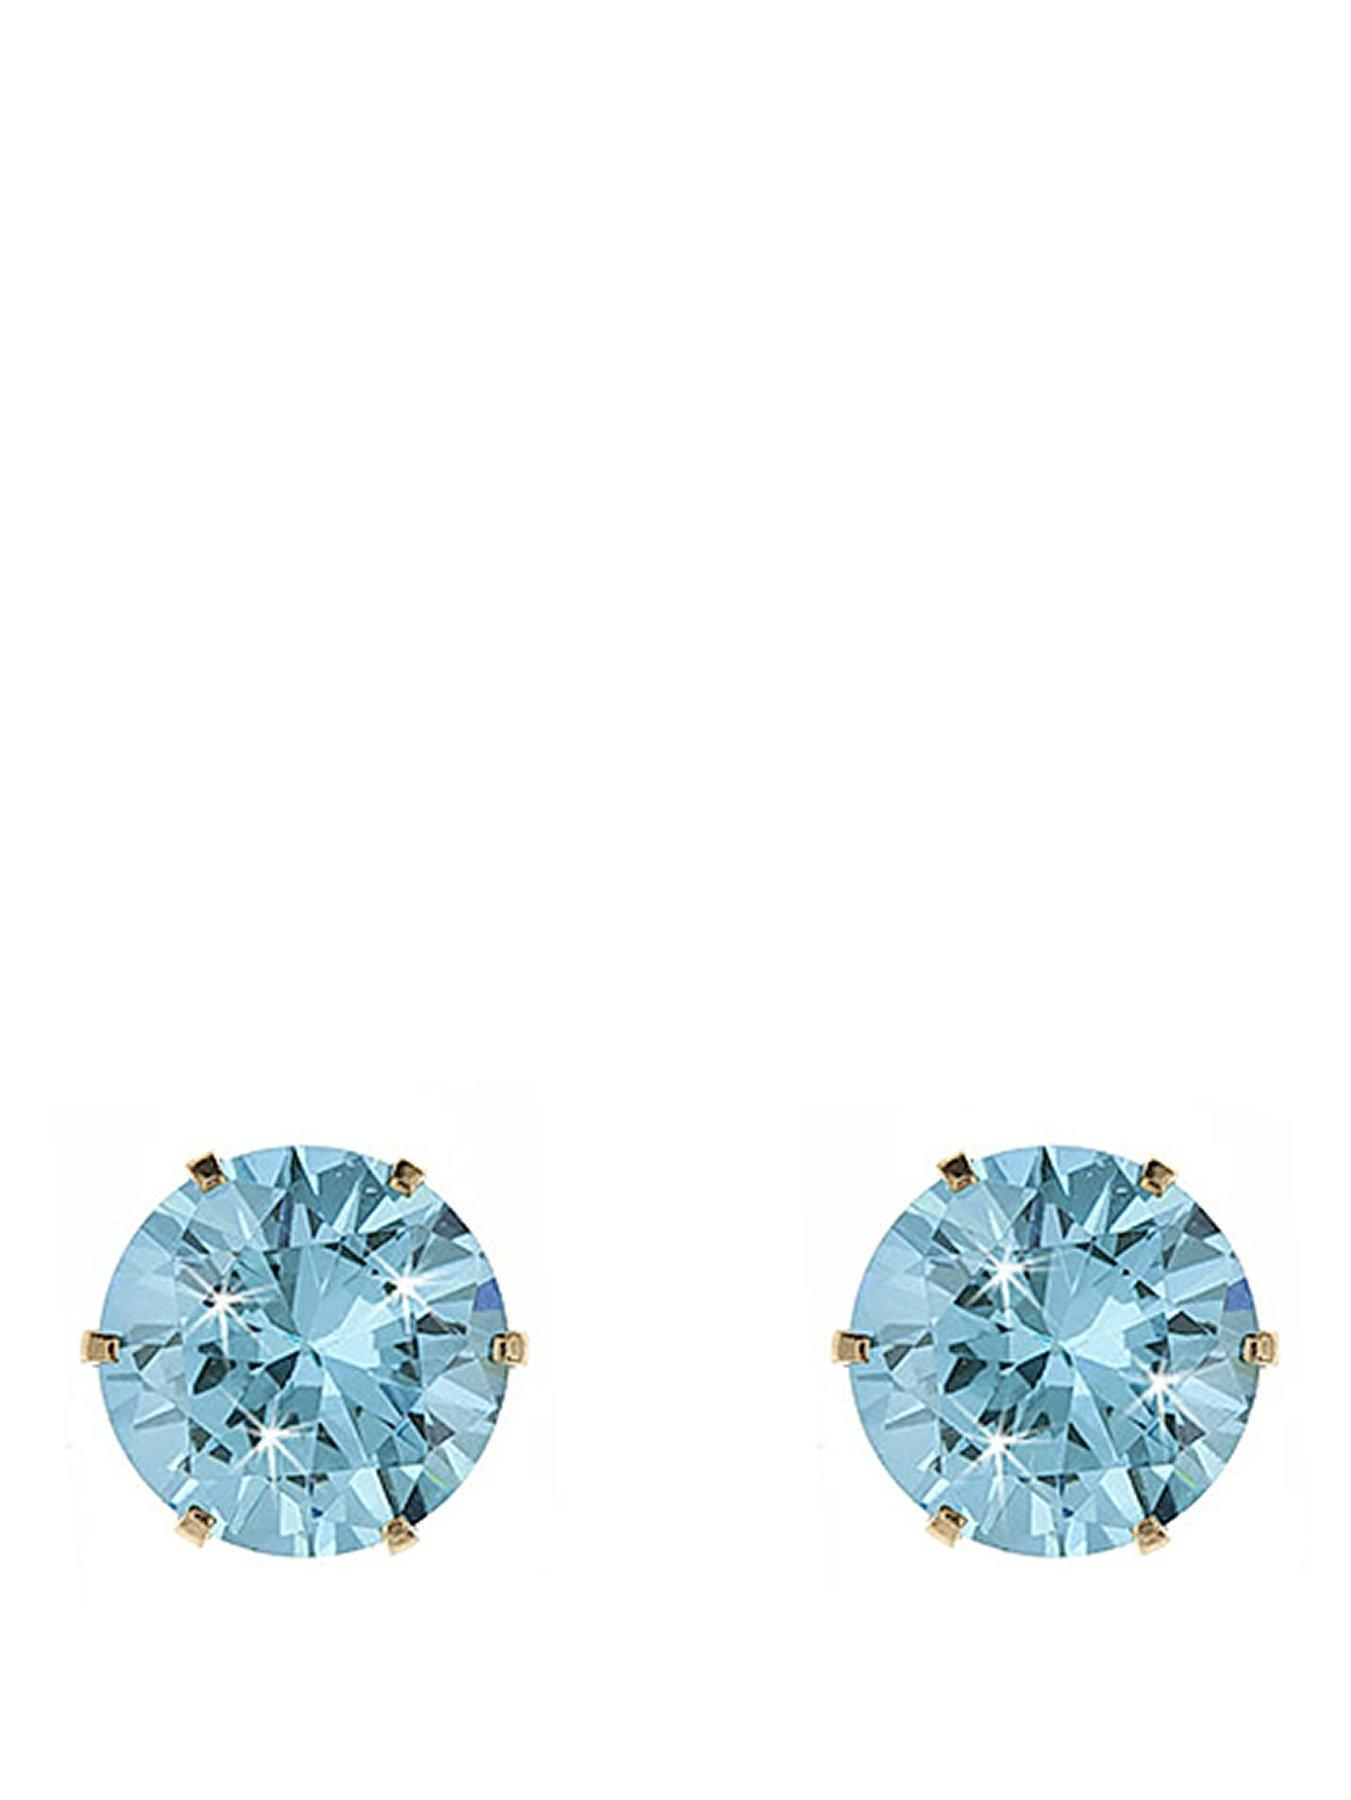 3mm 9ct Yellow Gold Champagne Cubic Zirconia Stud Earrings